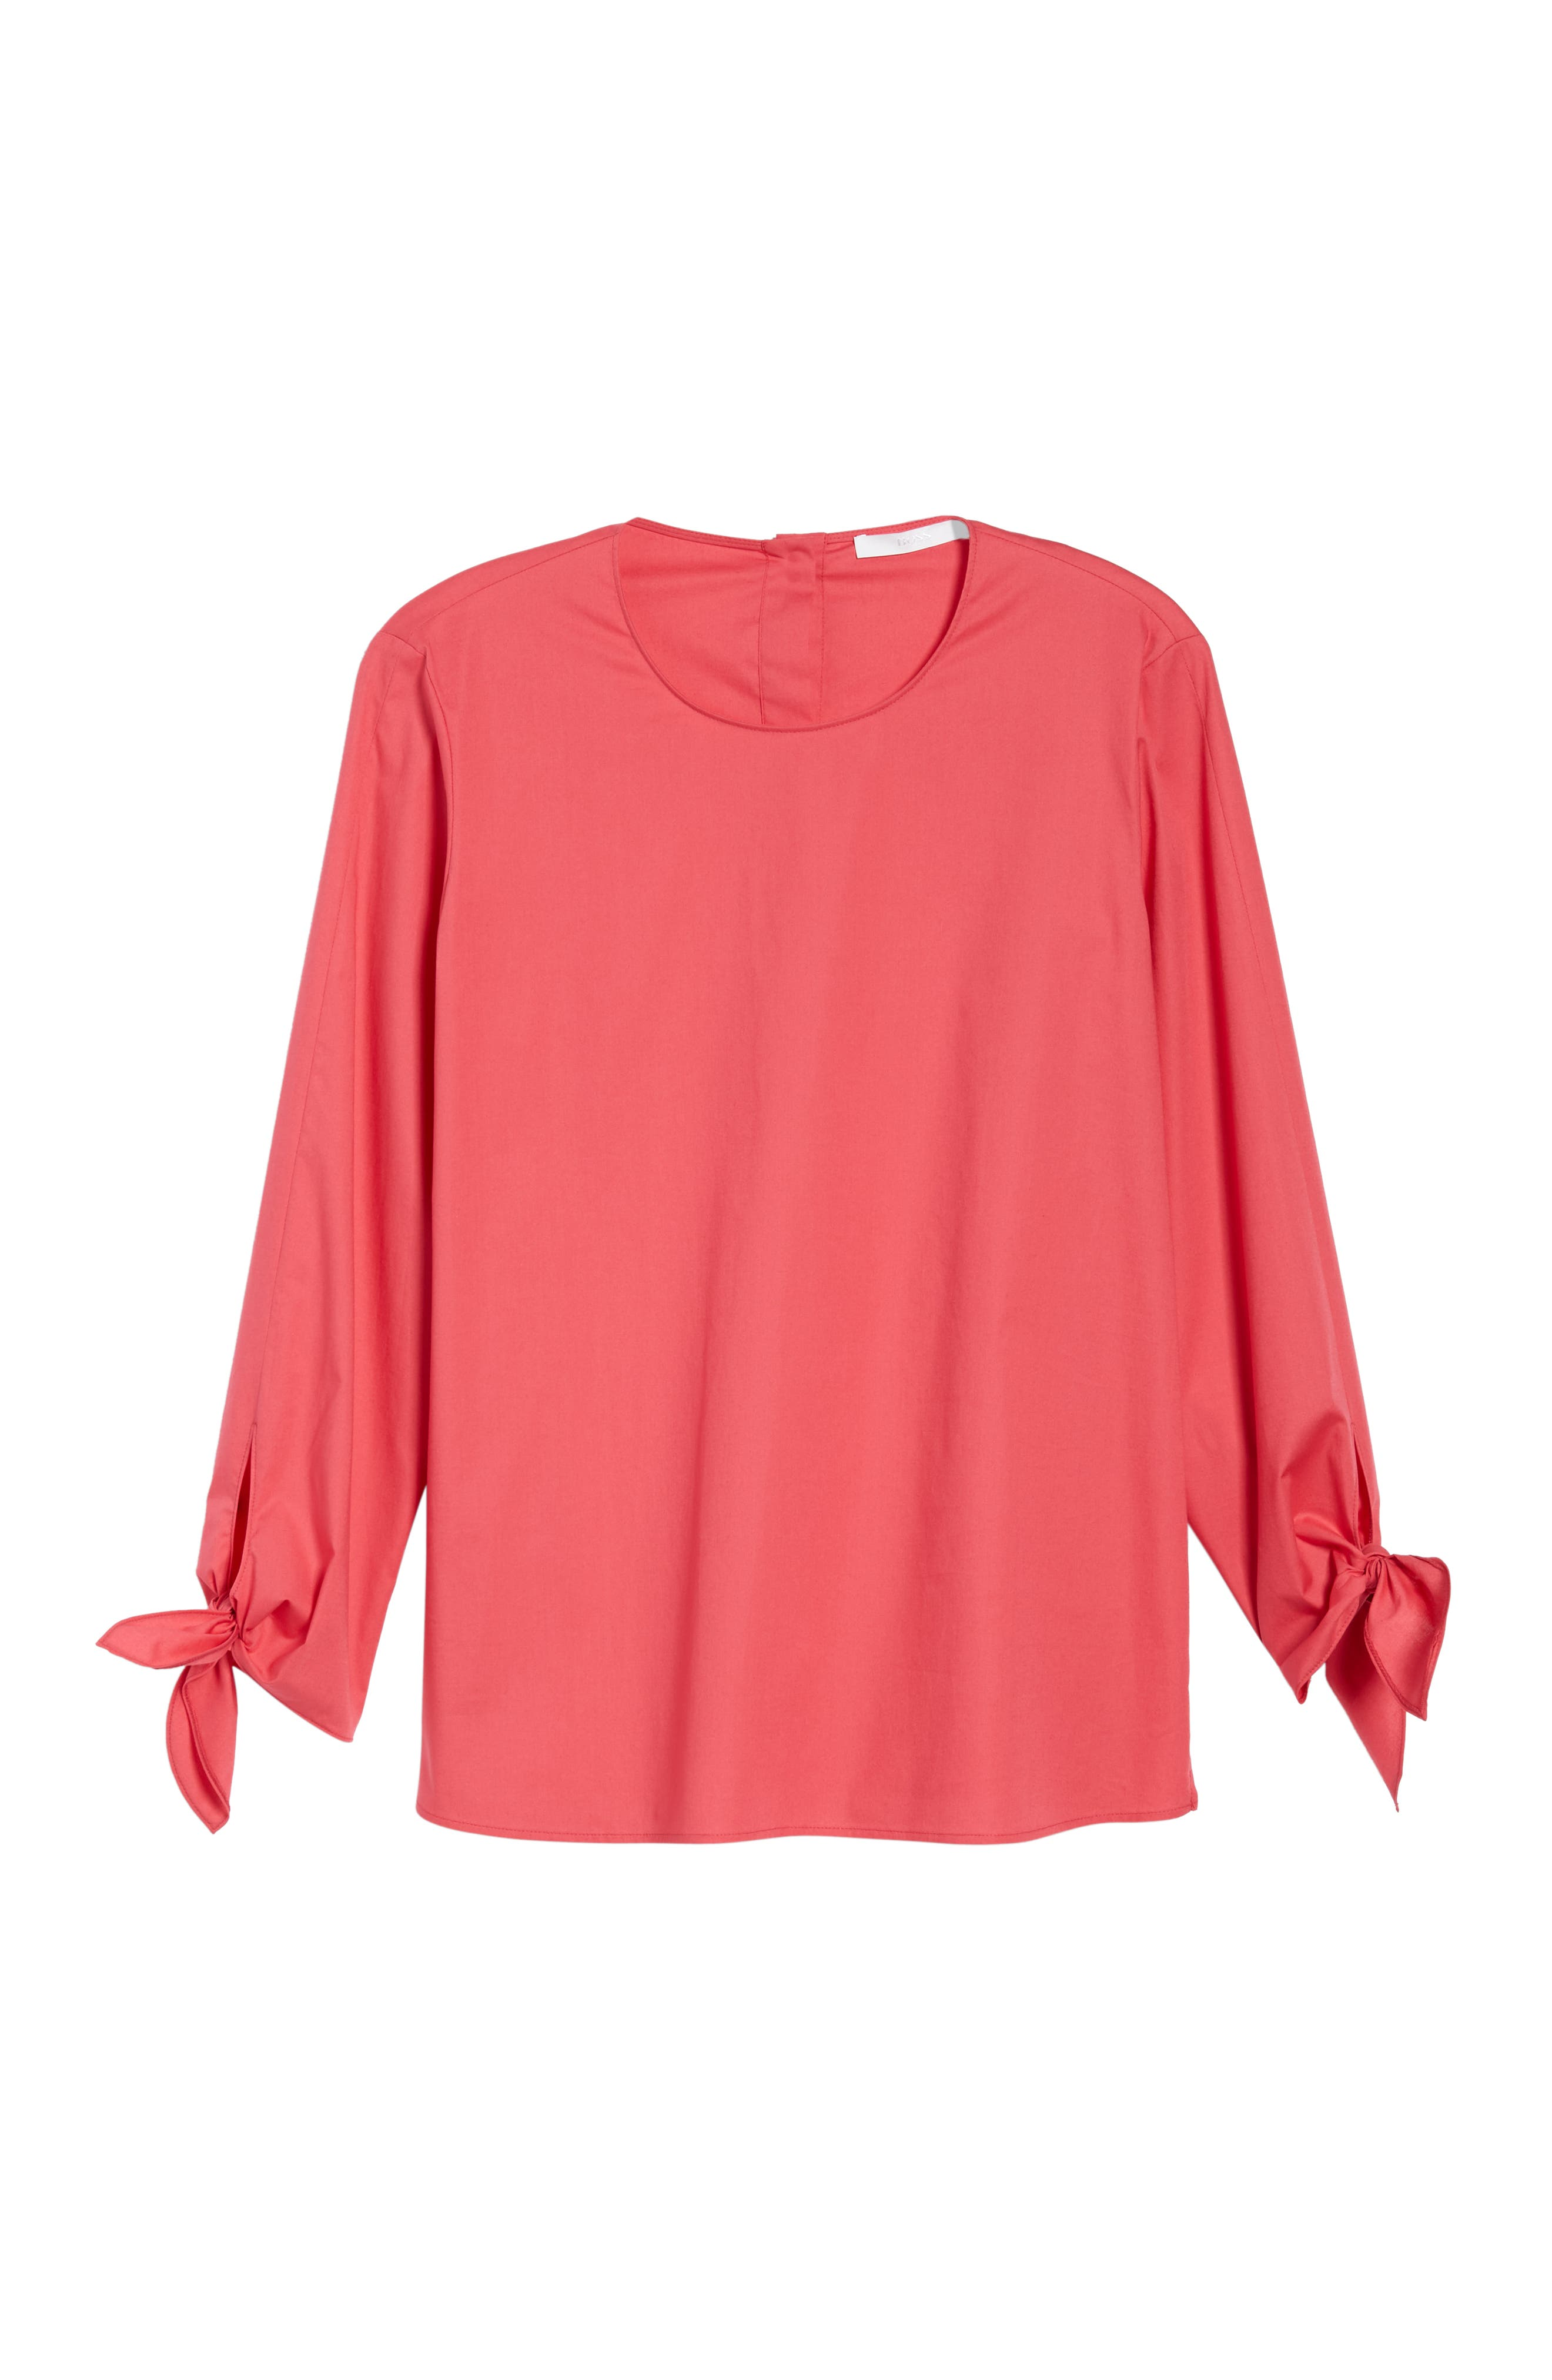 Isolema Stretch Cotton Bow Sleeve Top,                             Alternate thumbnail 6, color,                             692